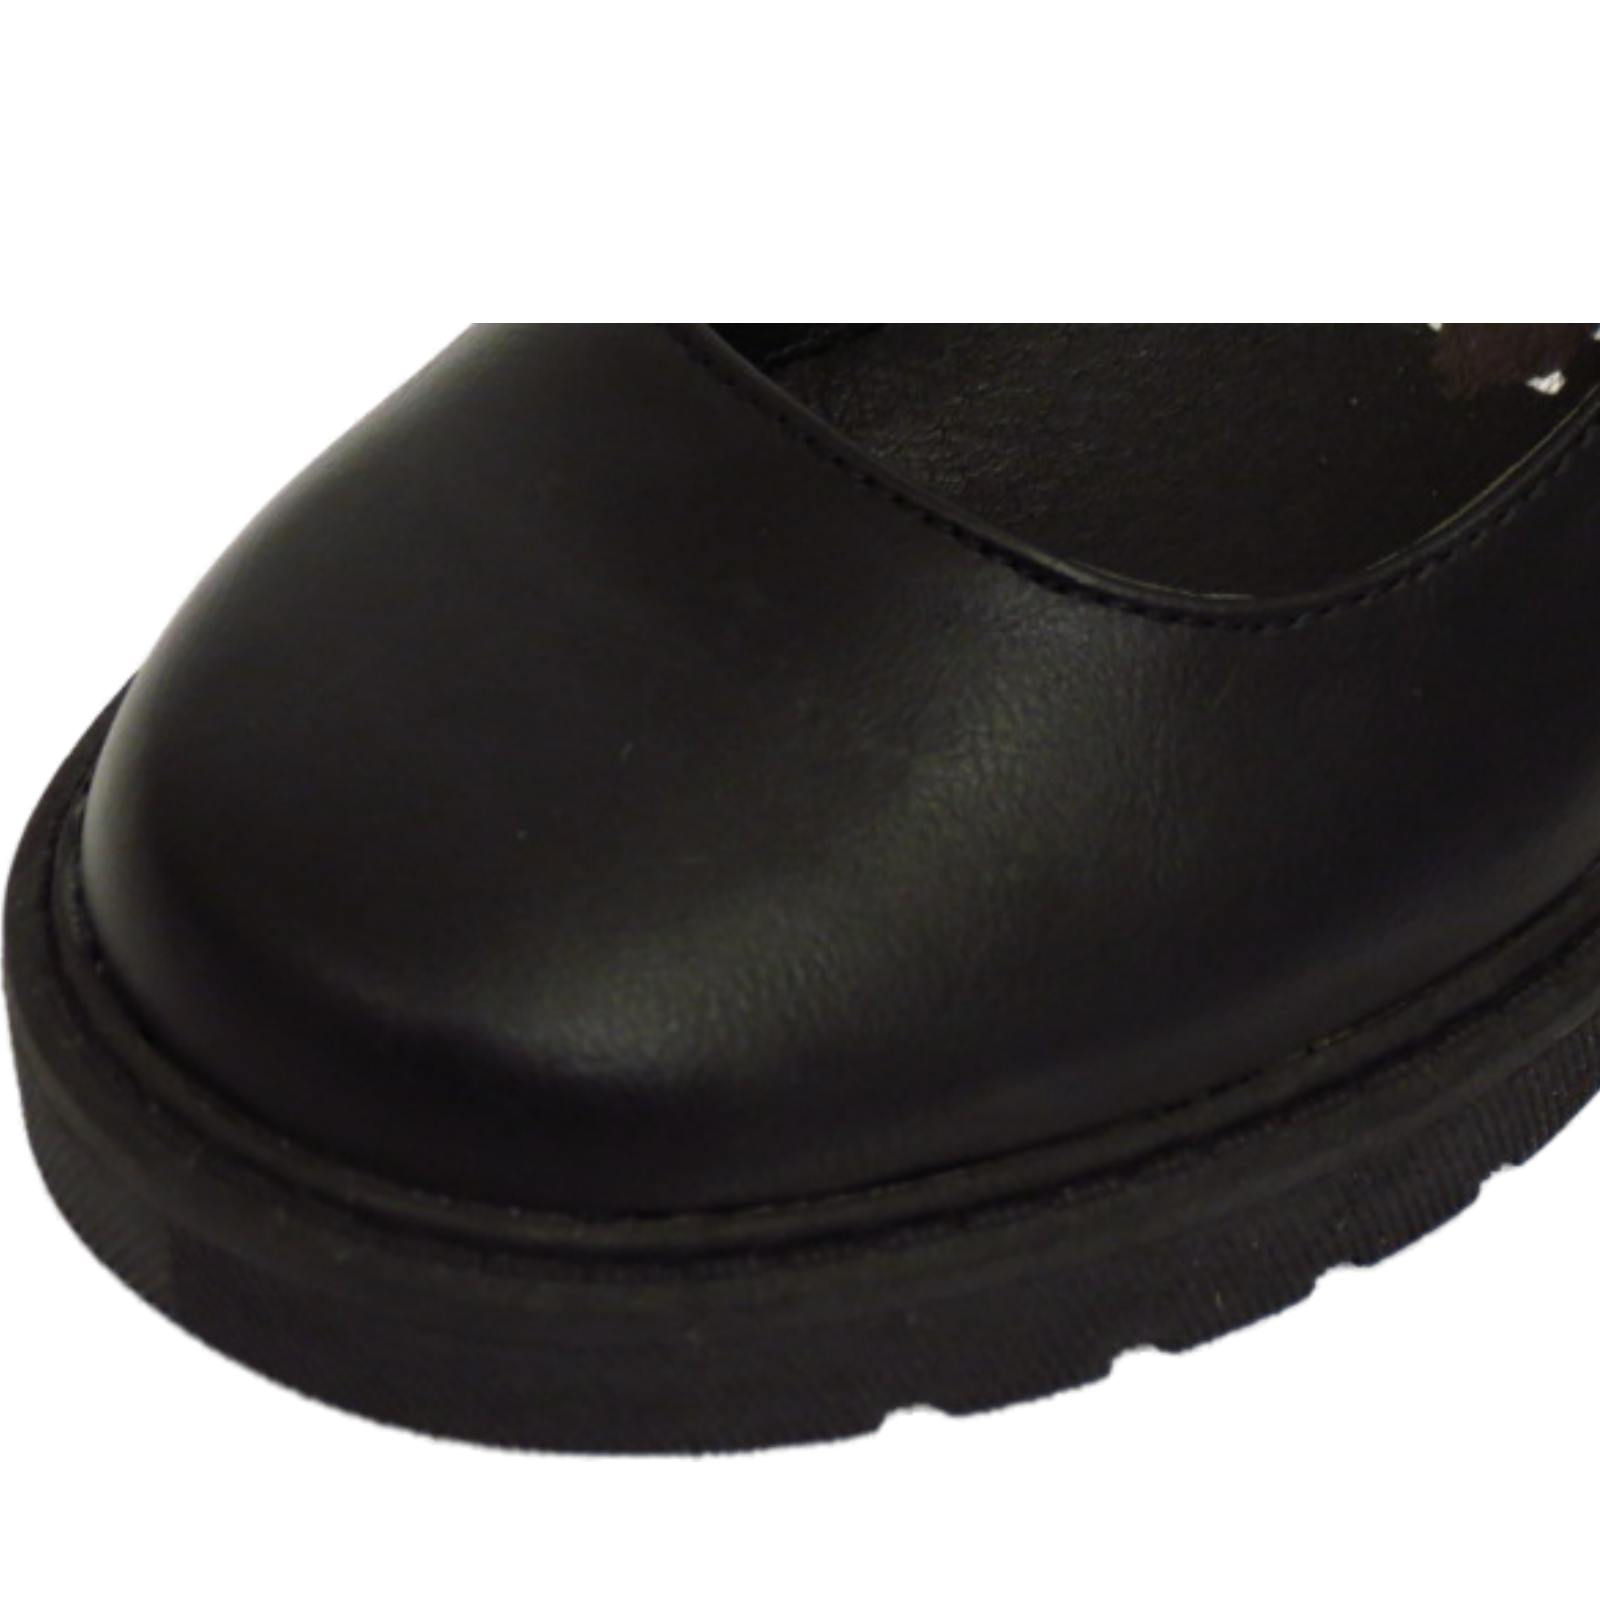 GIRLS-KIDS-CHILDRENS-BUCKLE-T-BAR-BLACK-SCHOOL-PUMPS-DOLLY-SMART-FLAT-SHOES-10-5 thumbnail 48